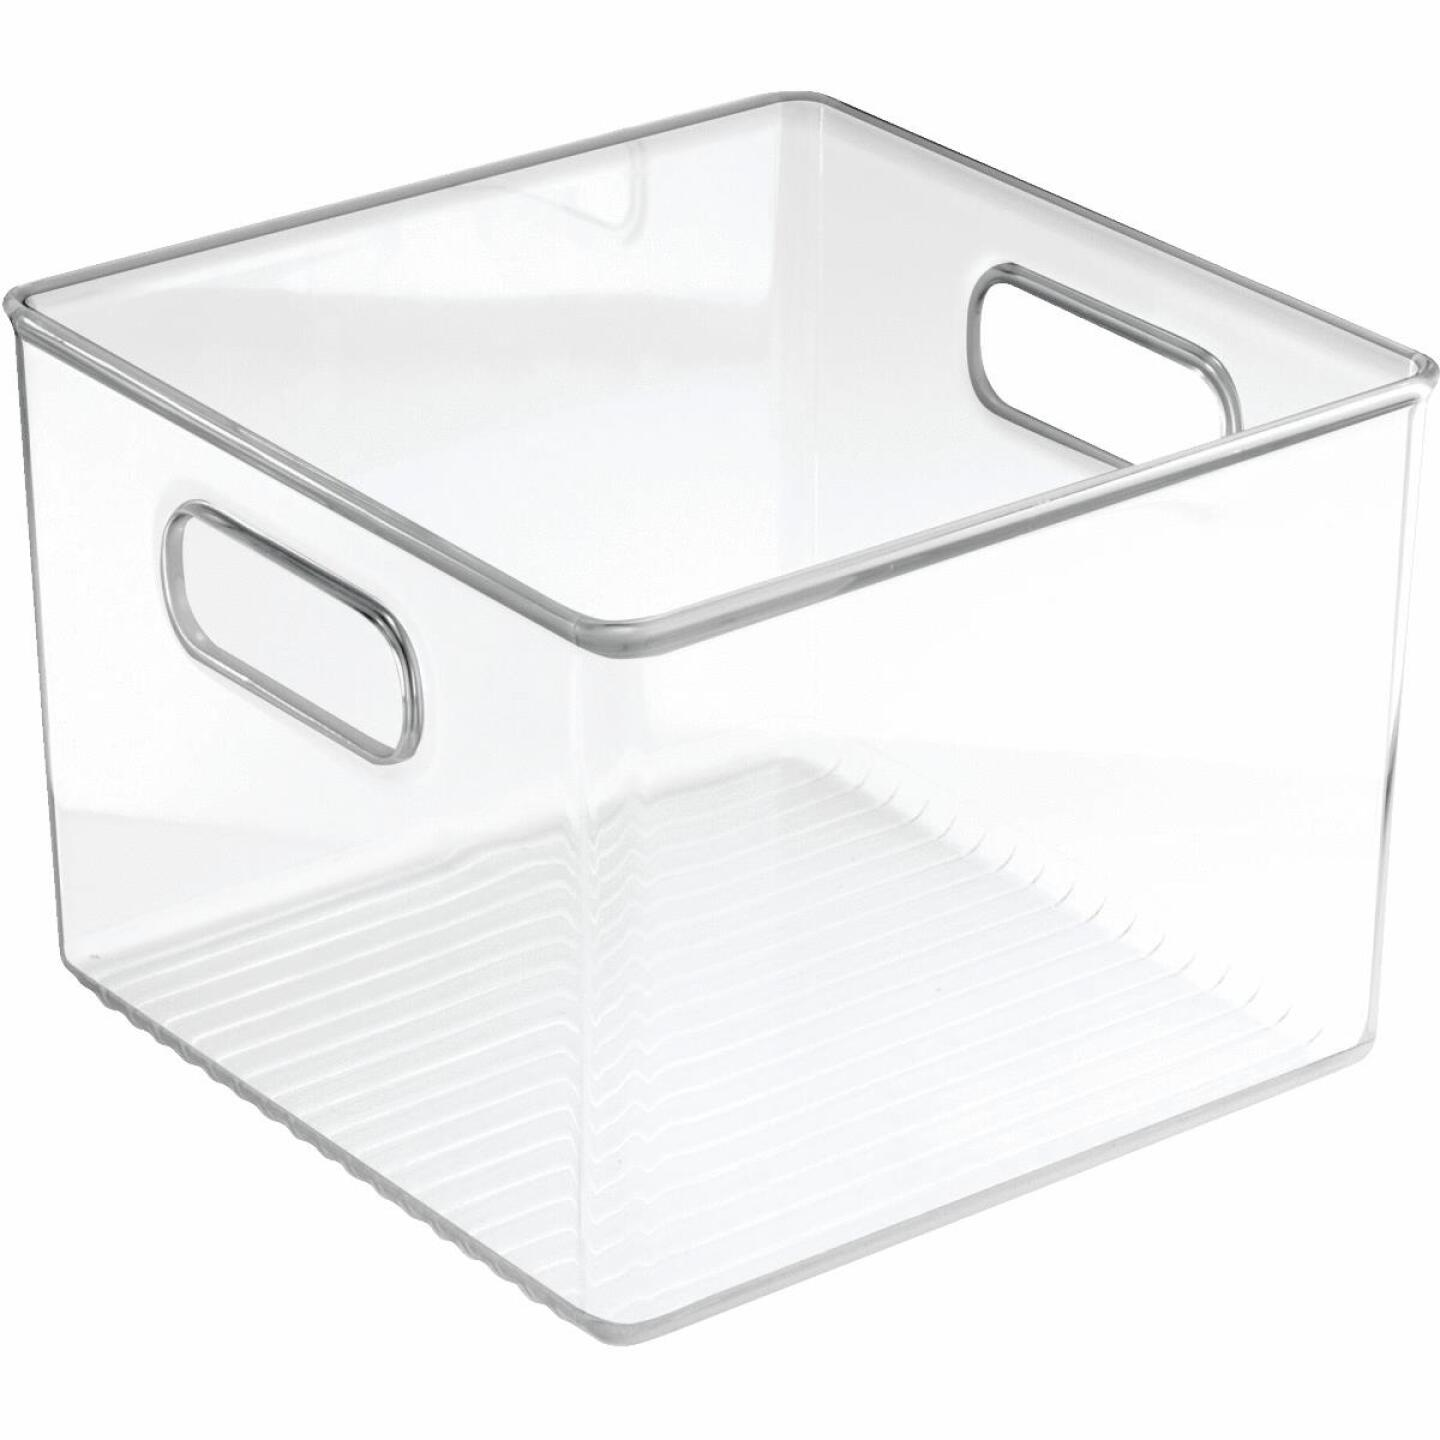 iDesign 8 In. W. x 8 In. D. x 6 In. H. Clear Fridge/Pantry Storage Binz Image 1